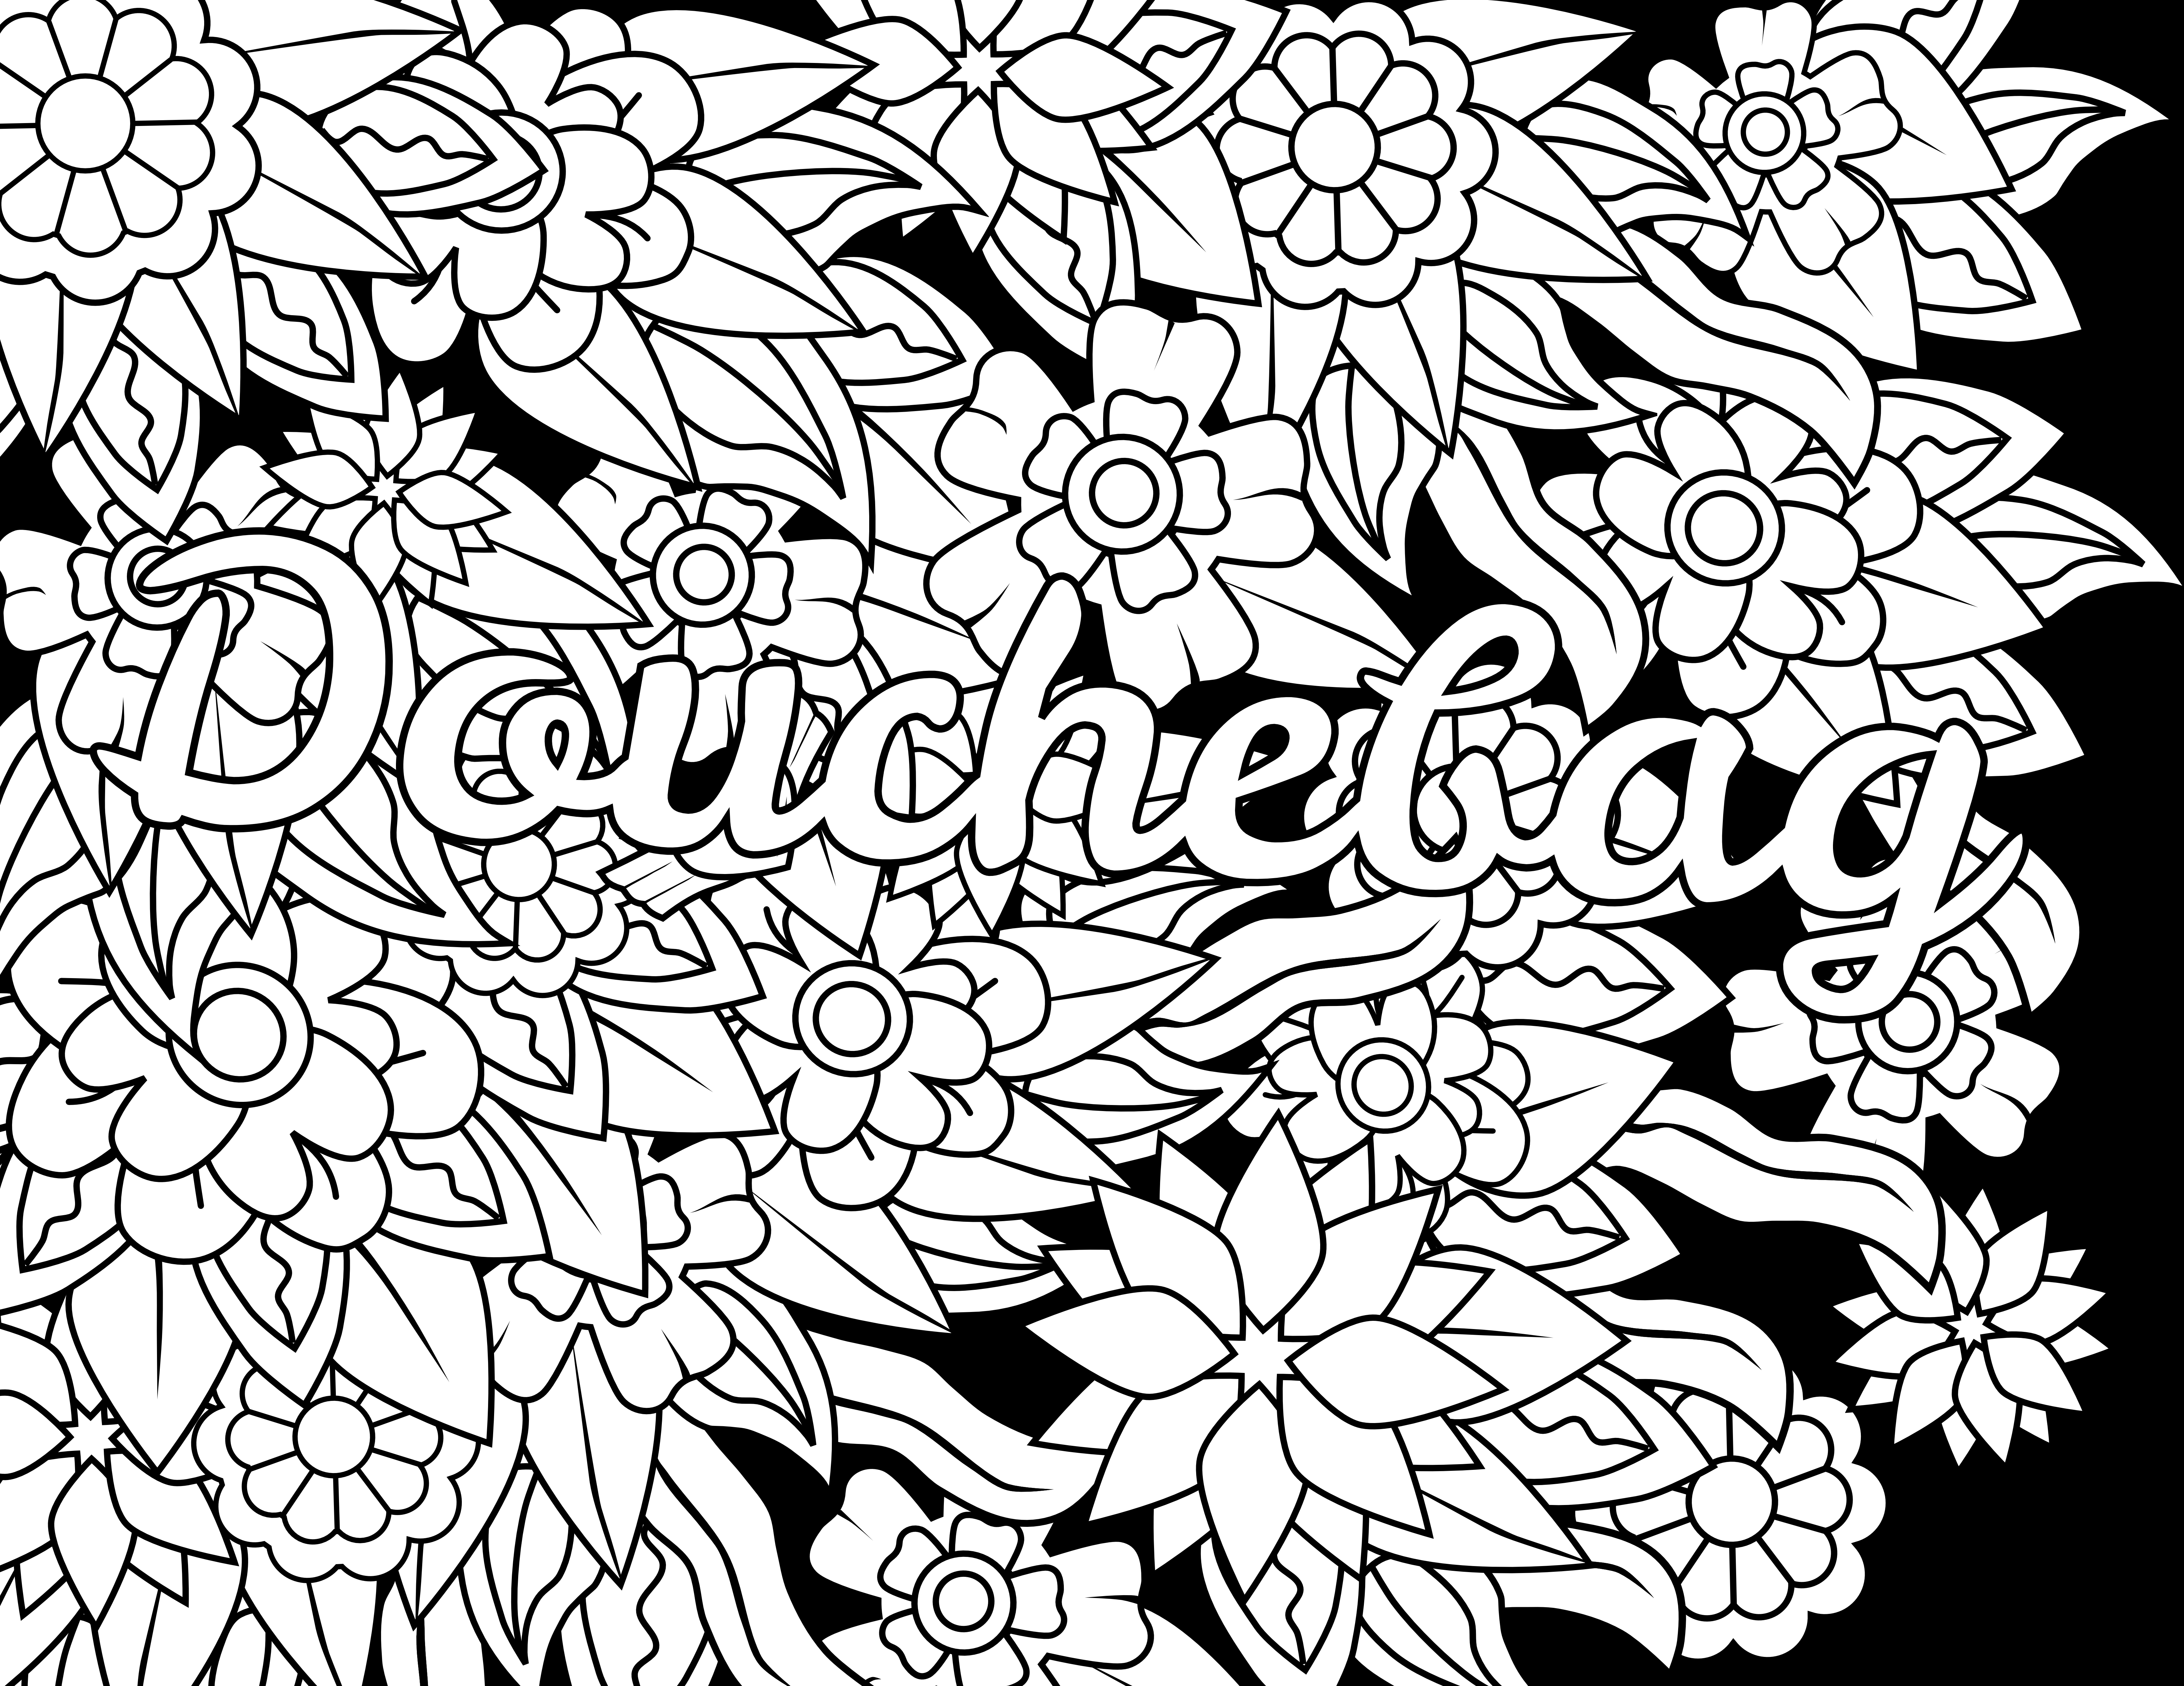 Coloring sheets in excel - Douchebag Adult Coloring Page Color Swear Blackout Free Coloring Pages Comes